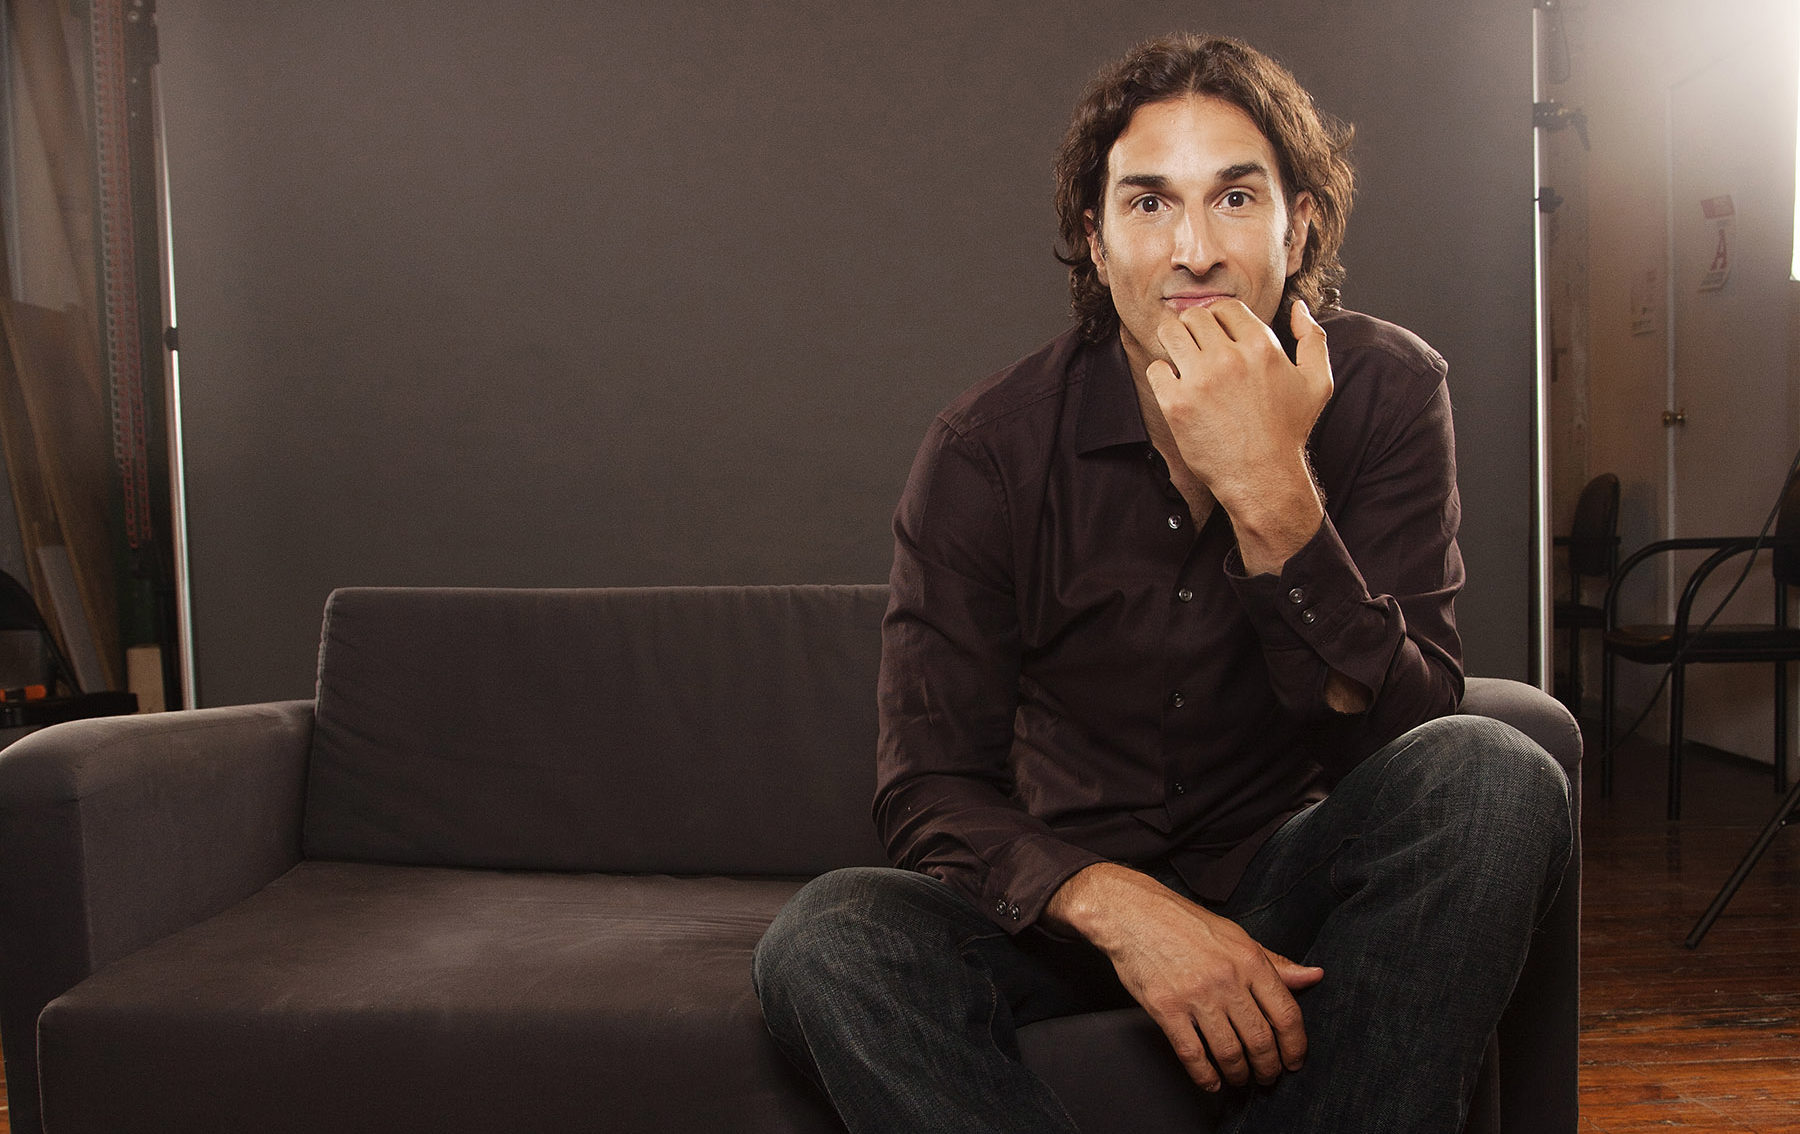 Gary Gulman will be one of the comedians at the 25th Kung Pao Kosher Comedy show, Dec. 23-25